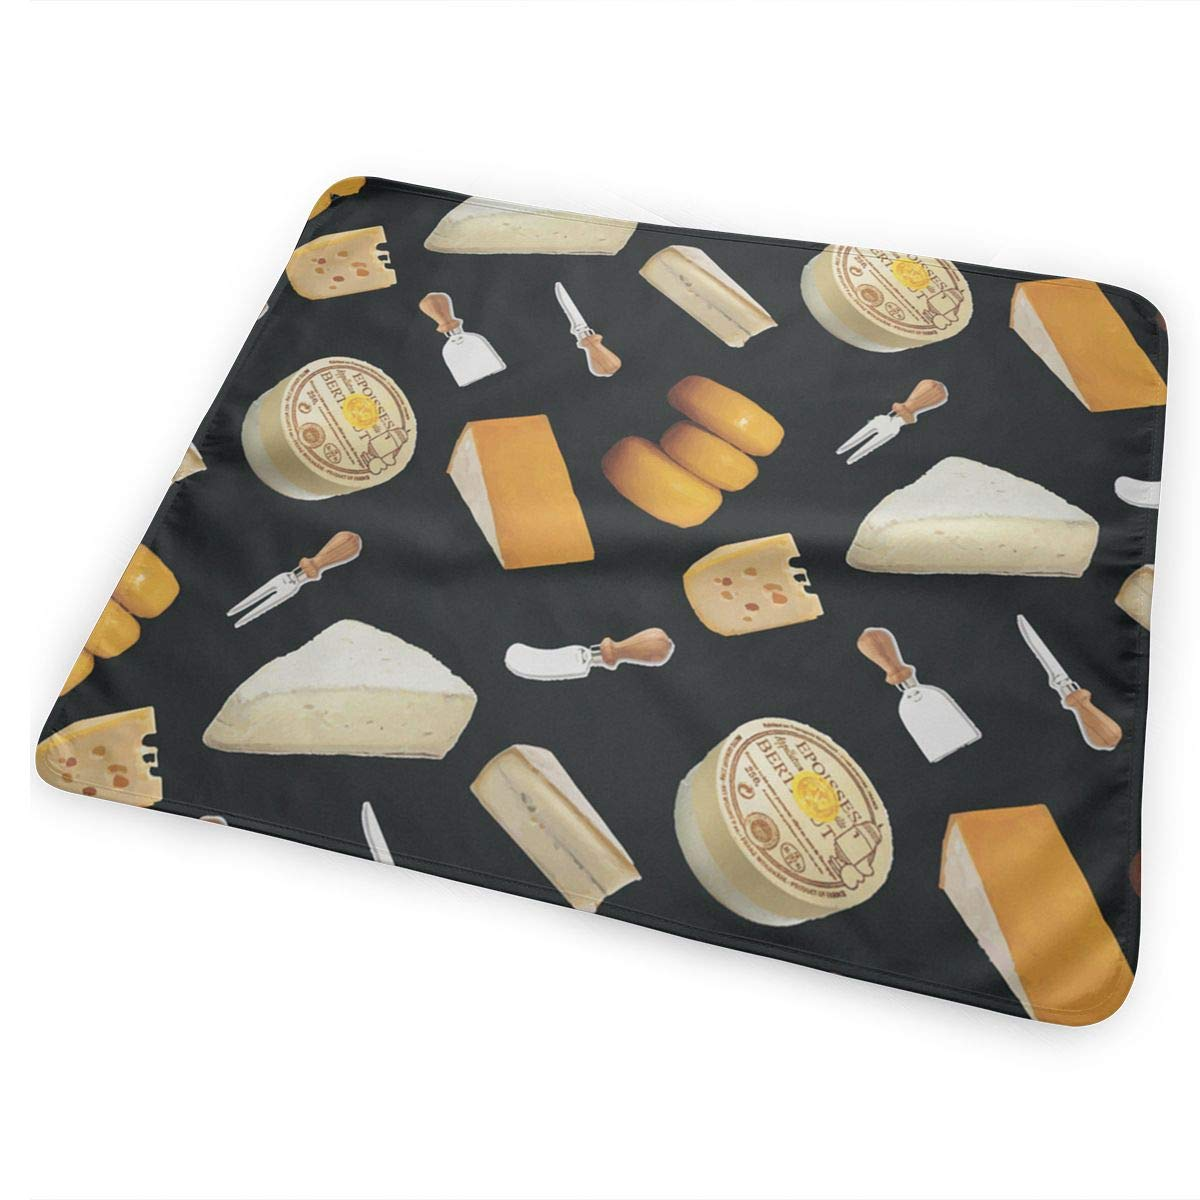 804c863b4a0e Amazon.com: YJMHstore French Cheese France Food Picnic Soft and ...